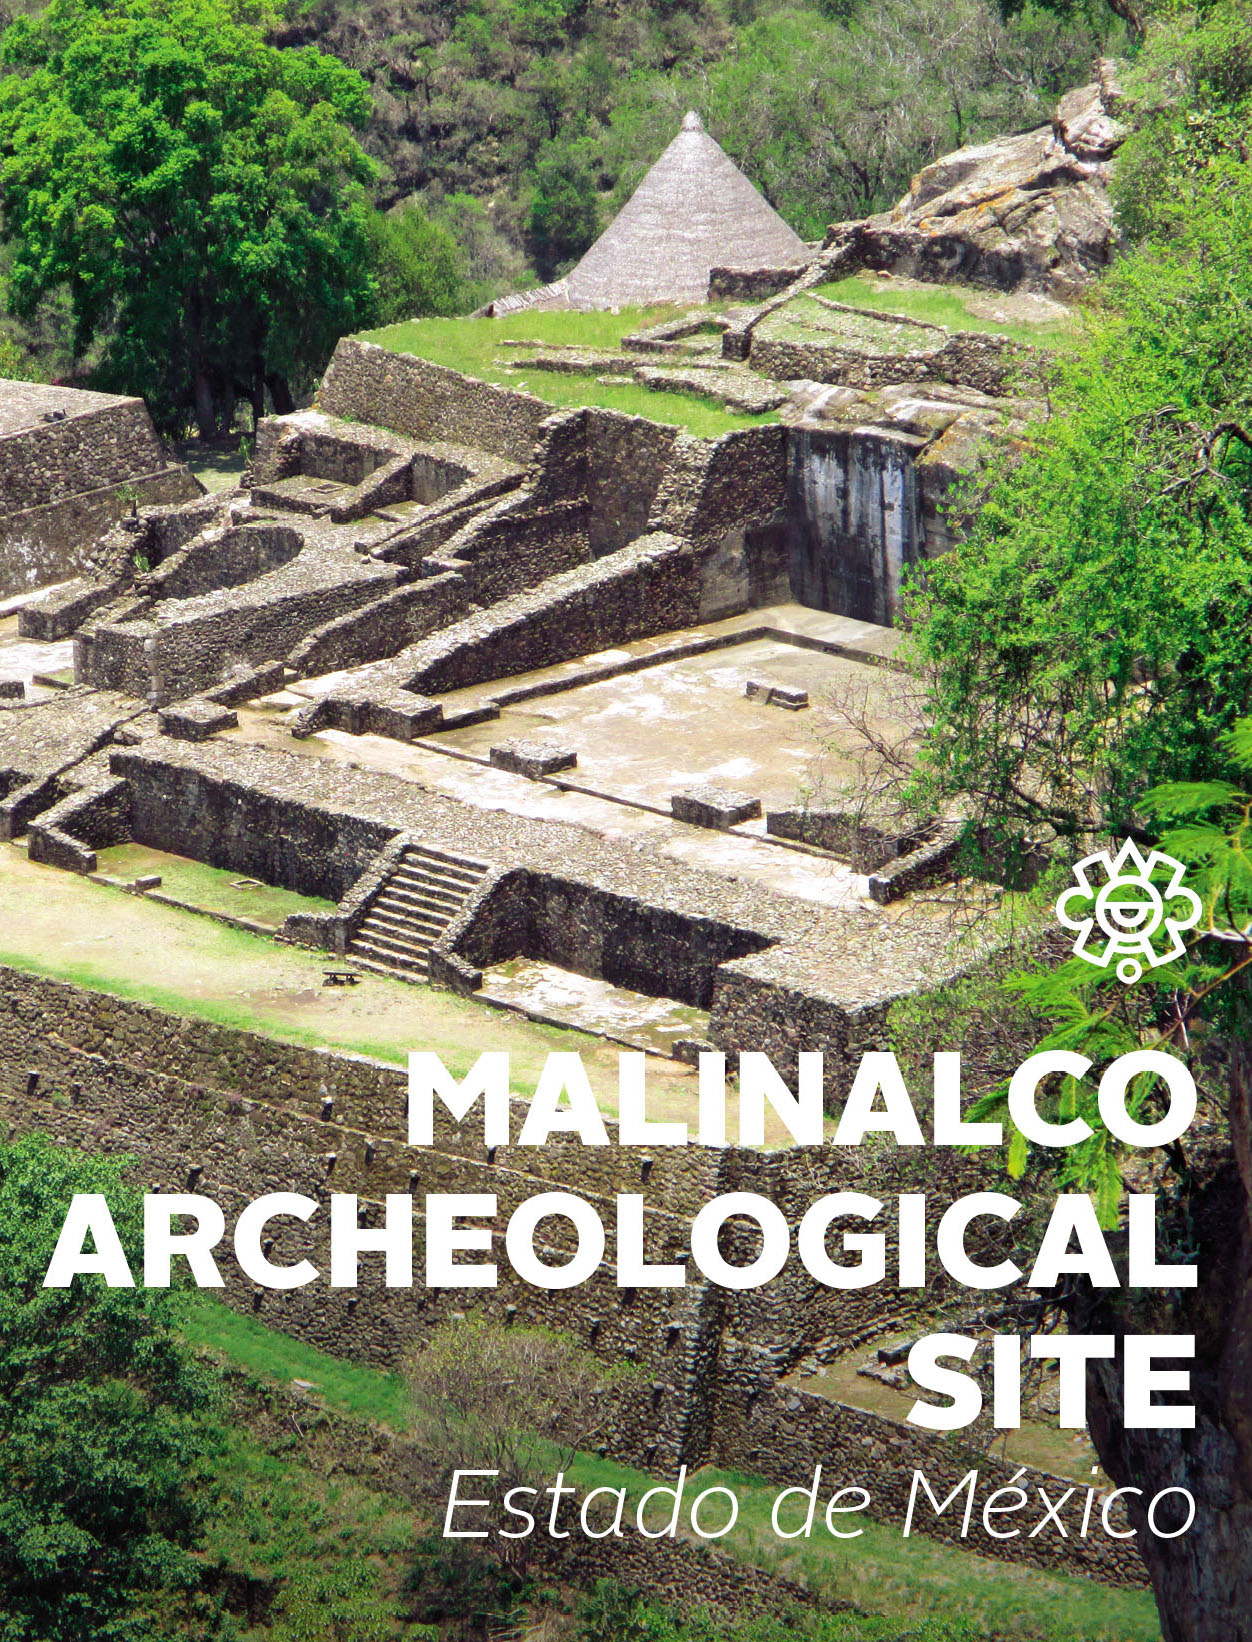 Malinalco Archeological Site